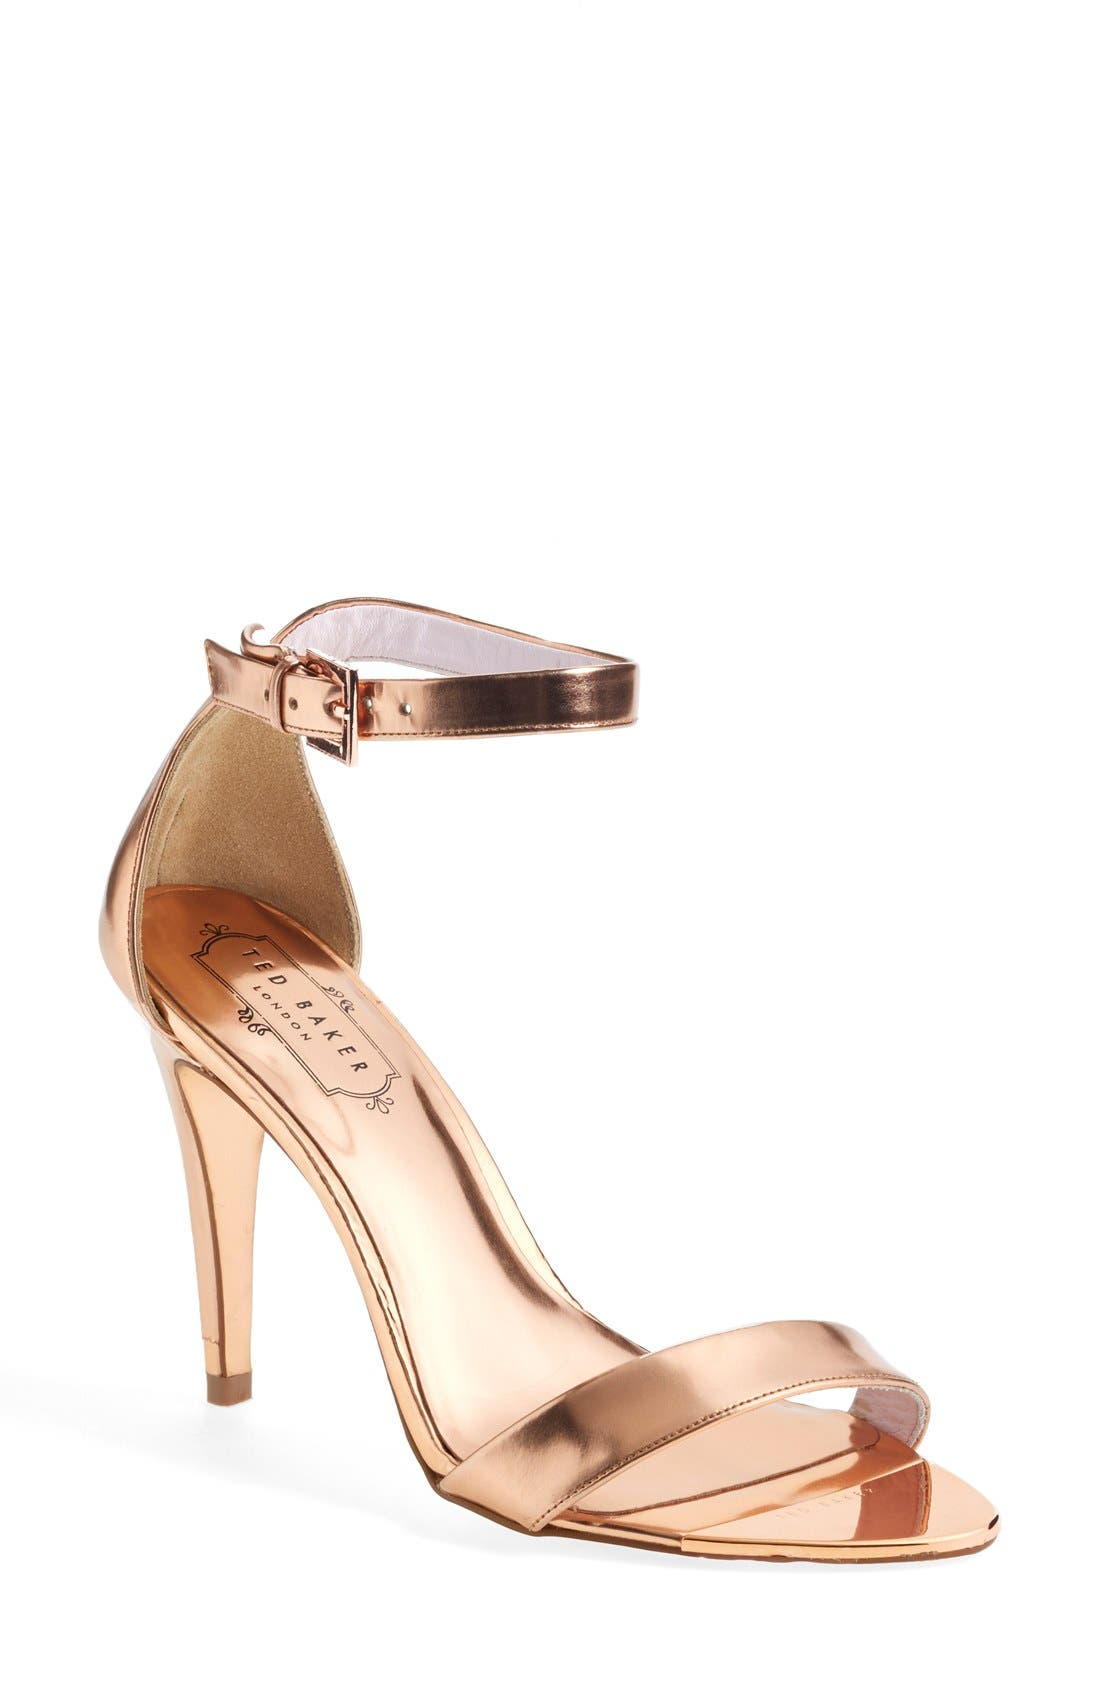 Alternate Image 1 Selected - Ted Baker London 'Juliennas' Leather Sandal (Women)